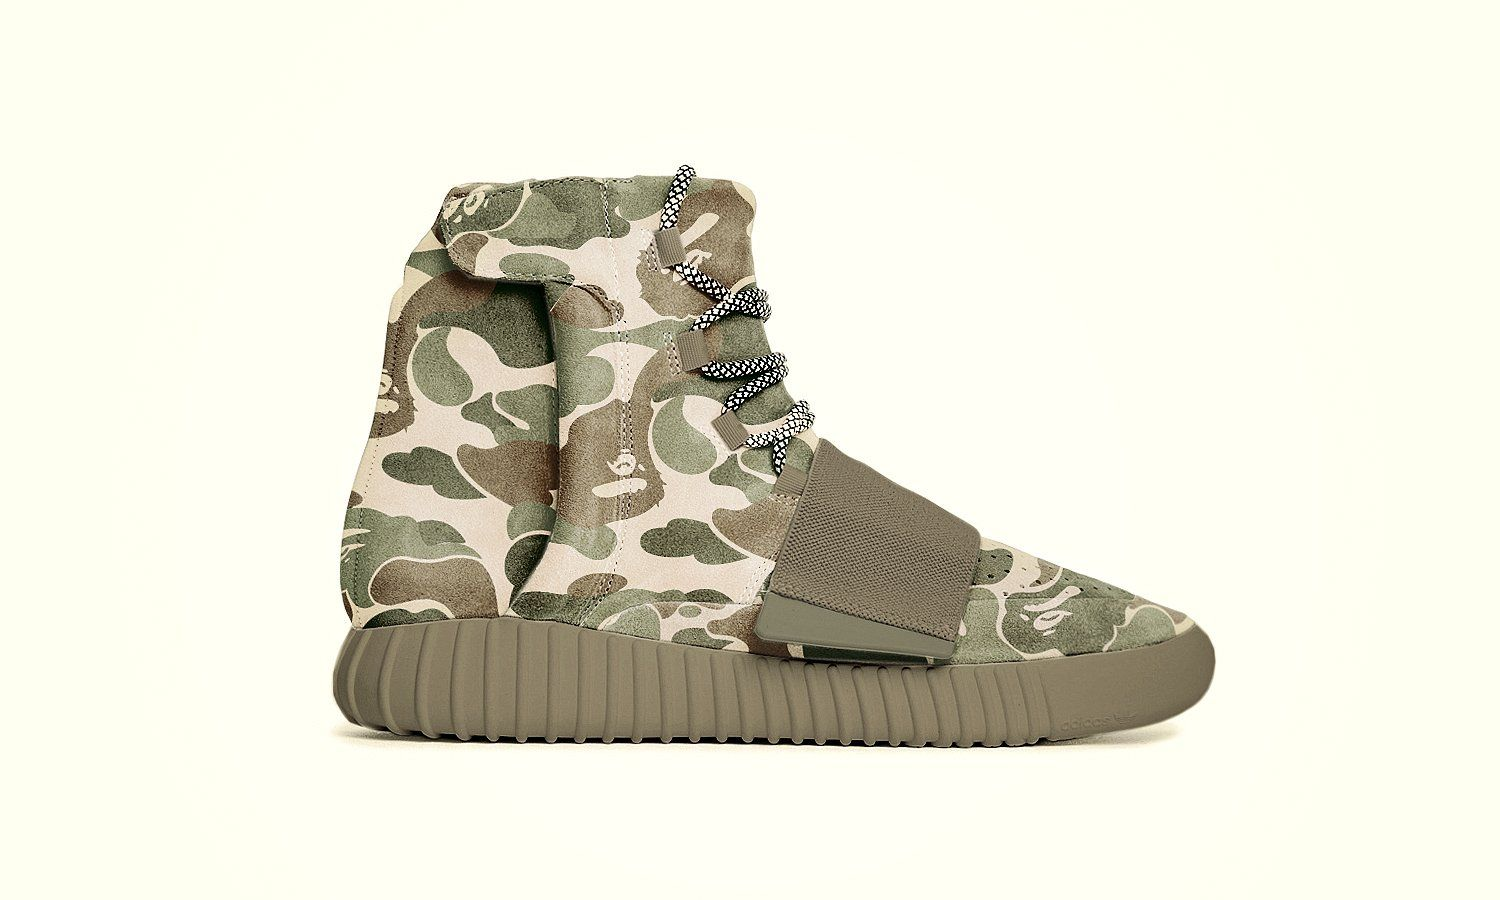 31382c1789a49 BAPE® x adidas Yeezy Boost | Shoes | Adidas, Cheap adidas shoes ...